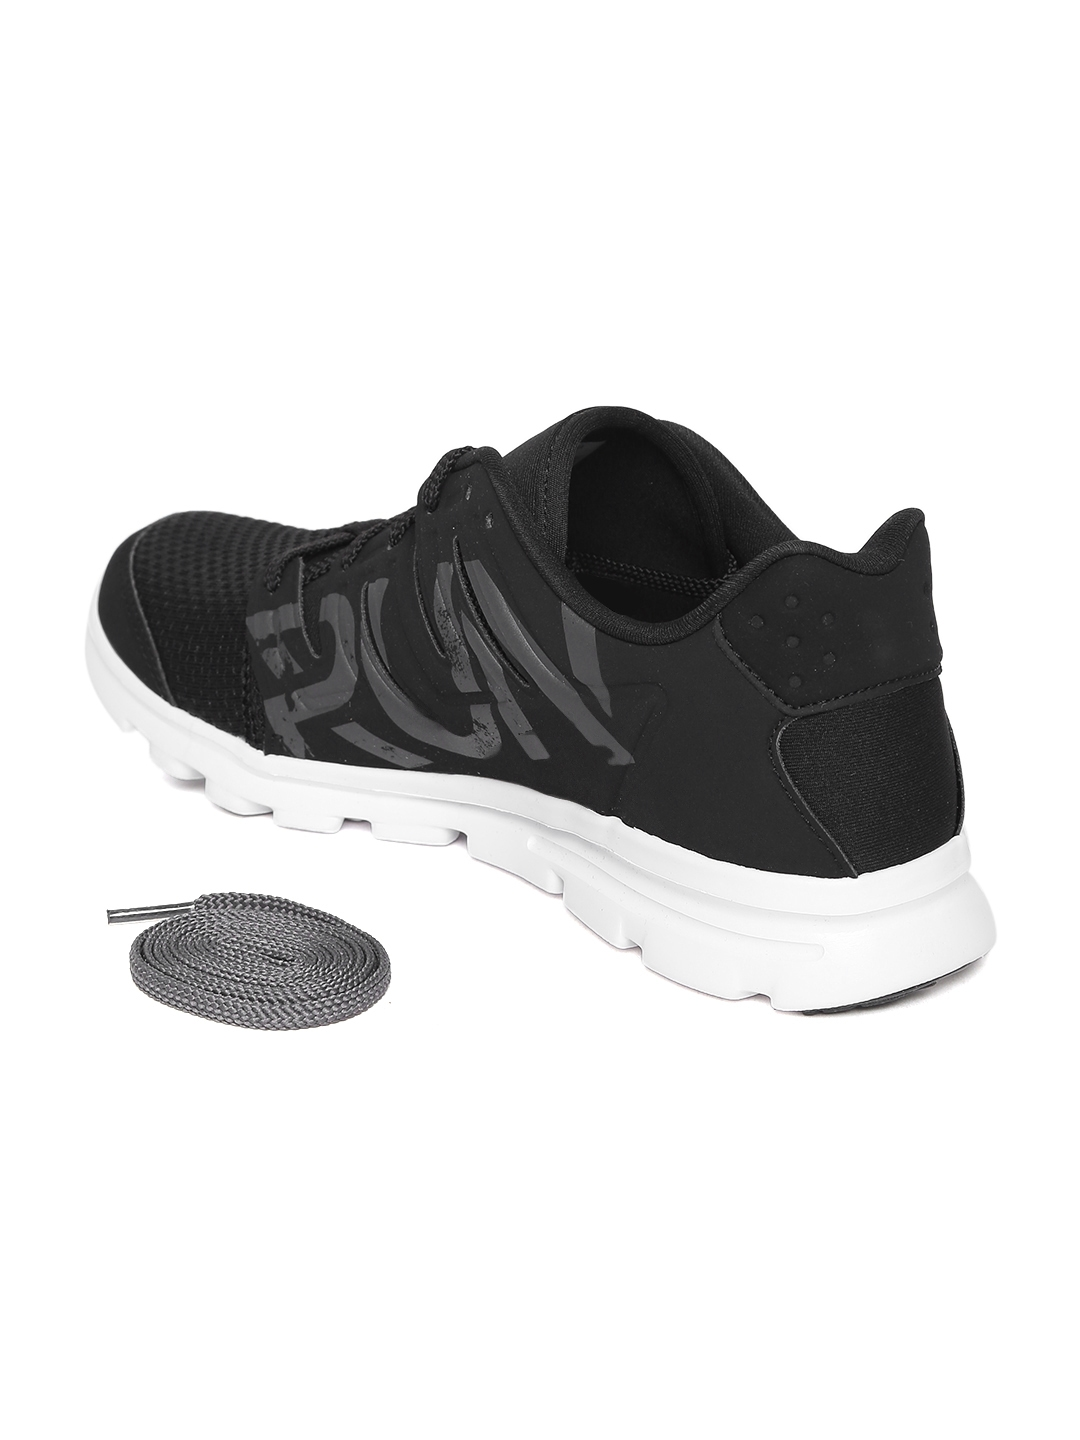 0829e851f44319 Buy Reebok Men Black Ultra Speed 2.0 Running Shoes - Sports Shoes ...